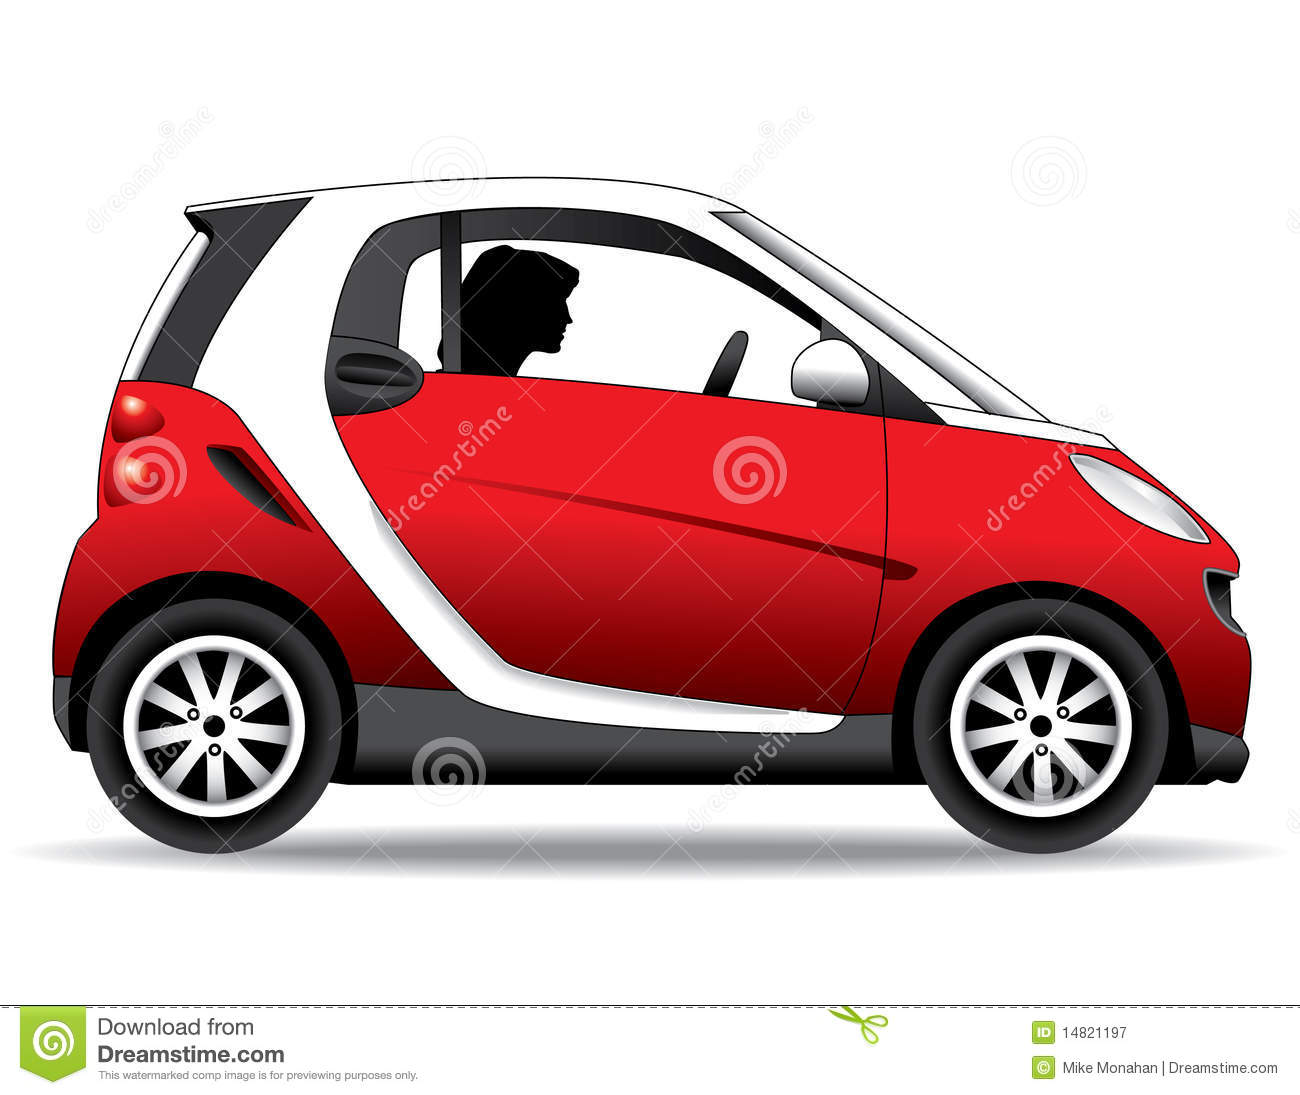 Person driving small red car royalty free stock photography image 14821197 - Clipart voiture ...